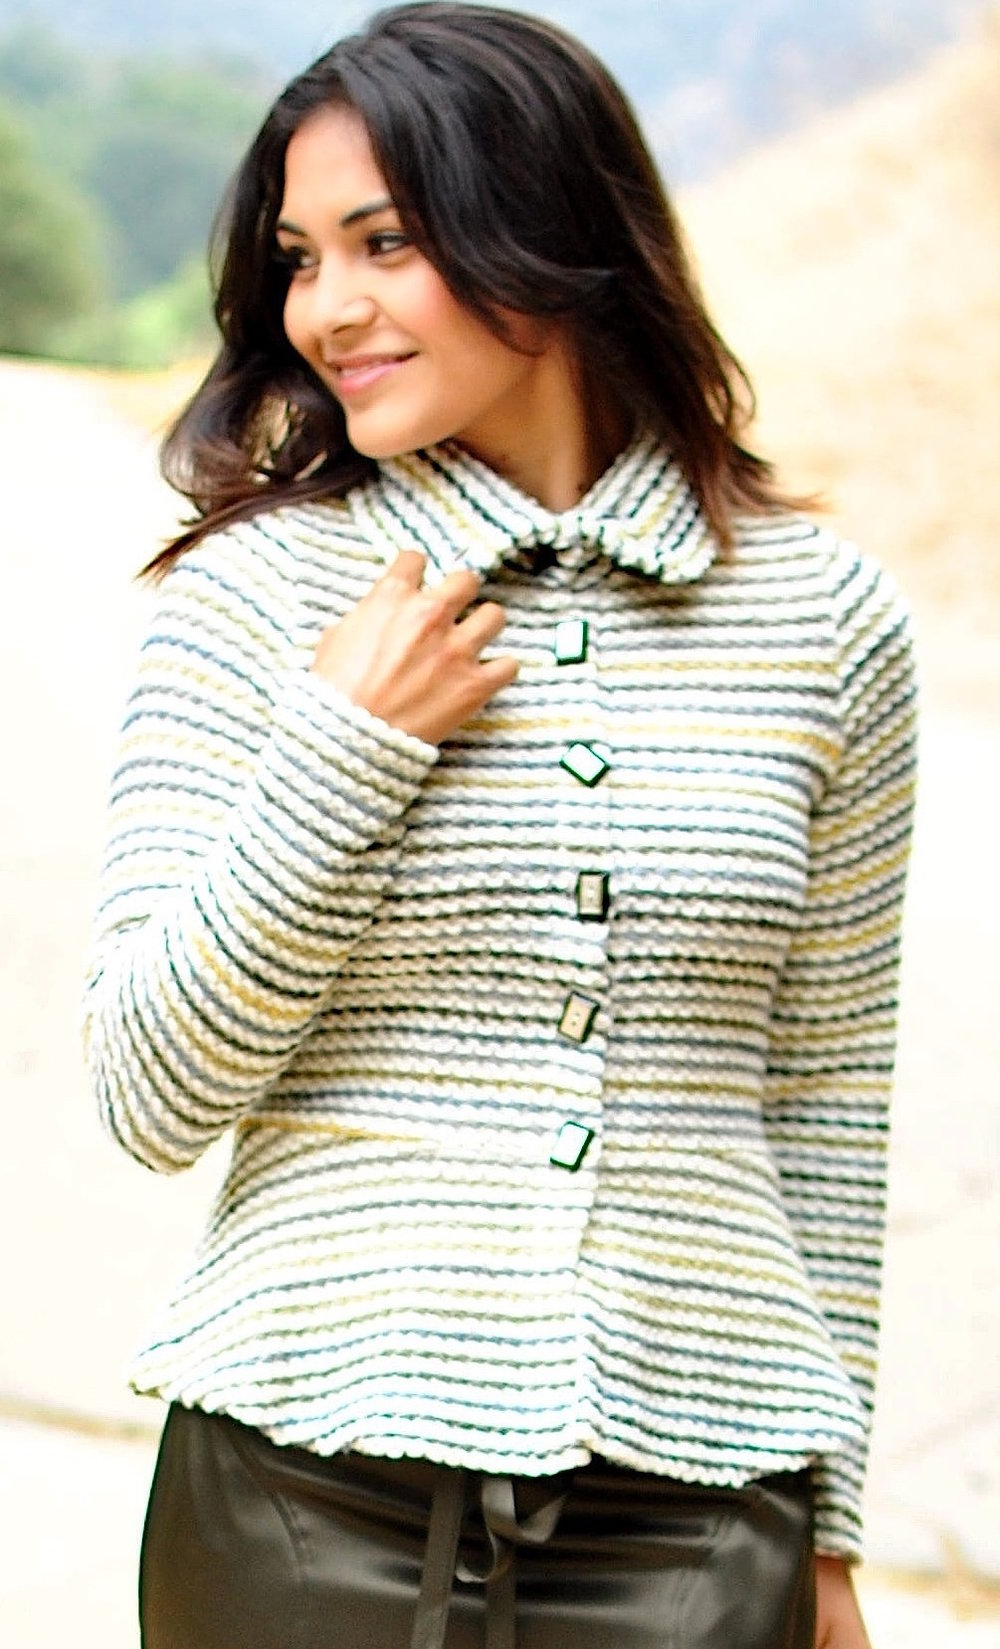 More Cozy-Cardi Knits (a couple in stock here)